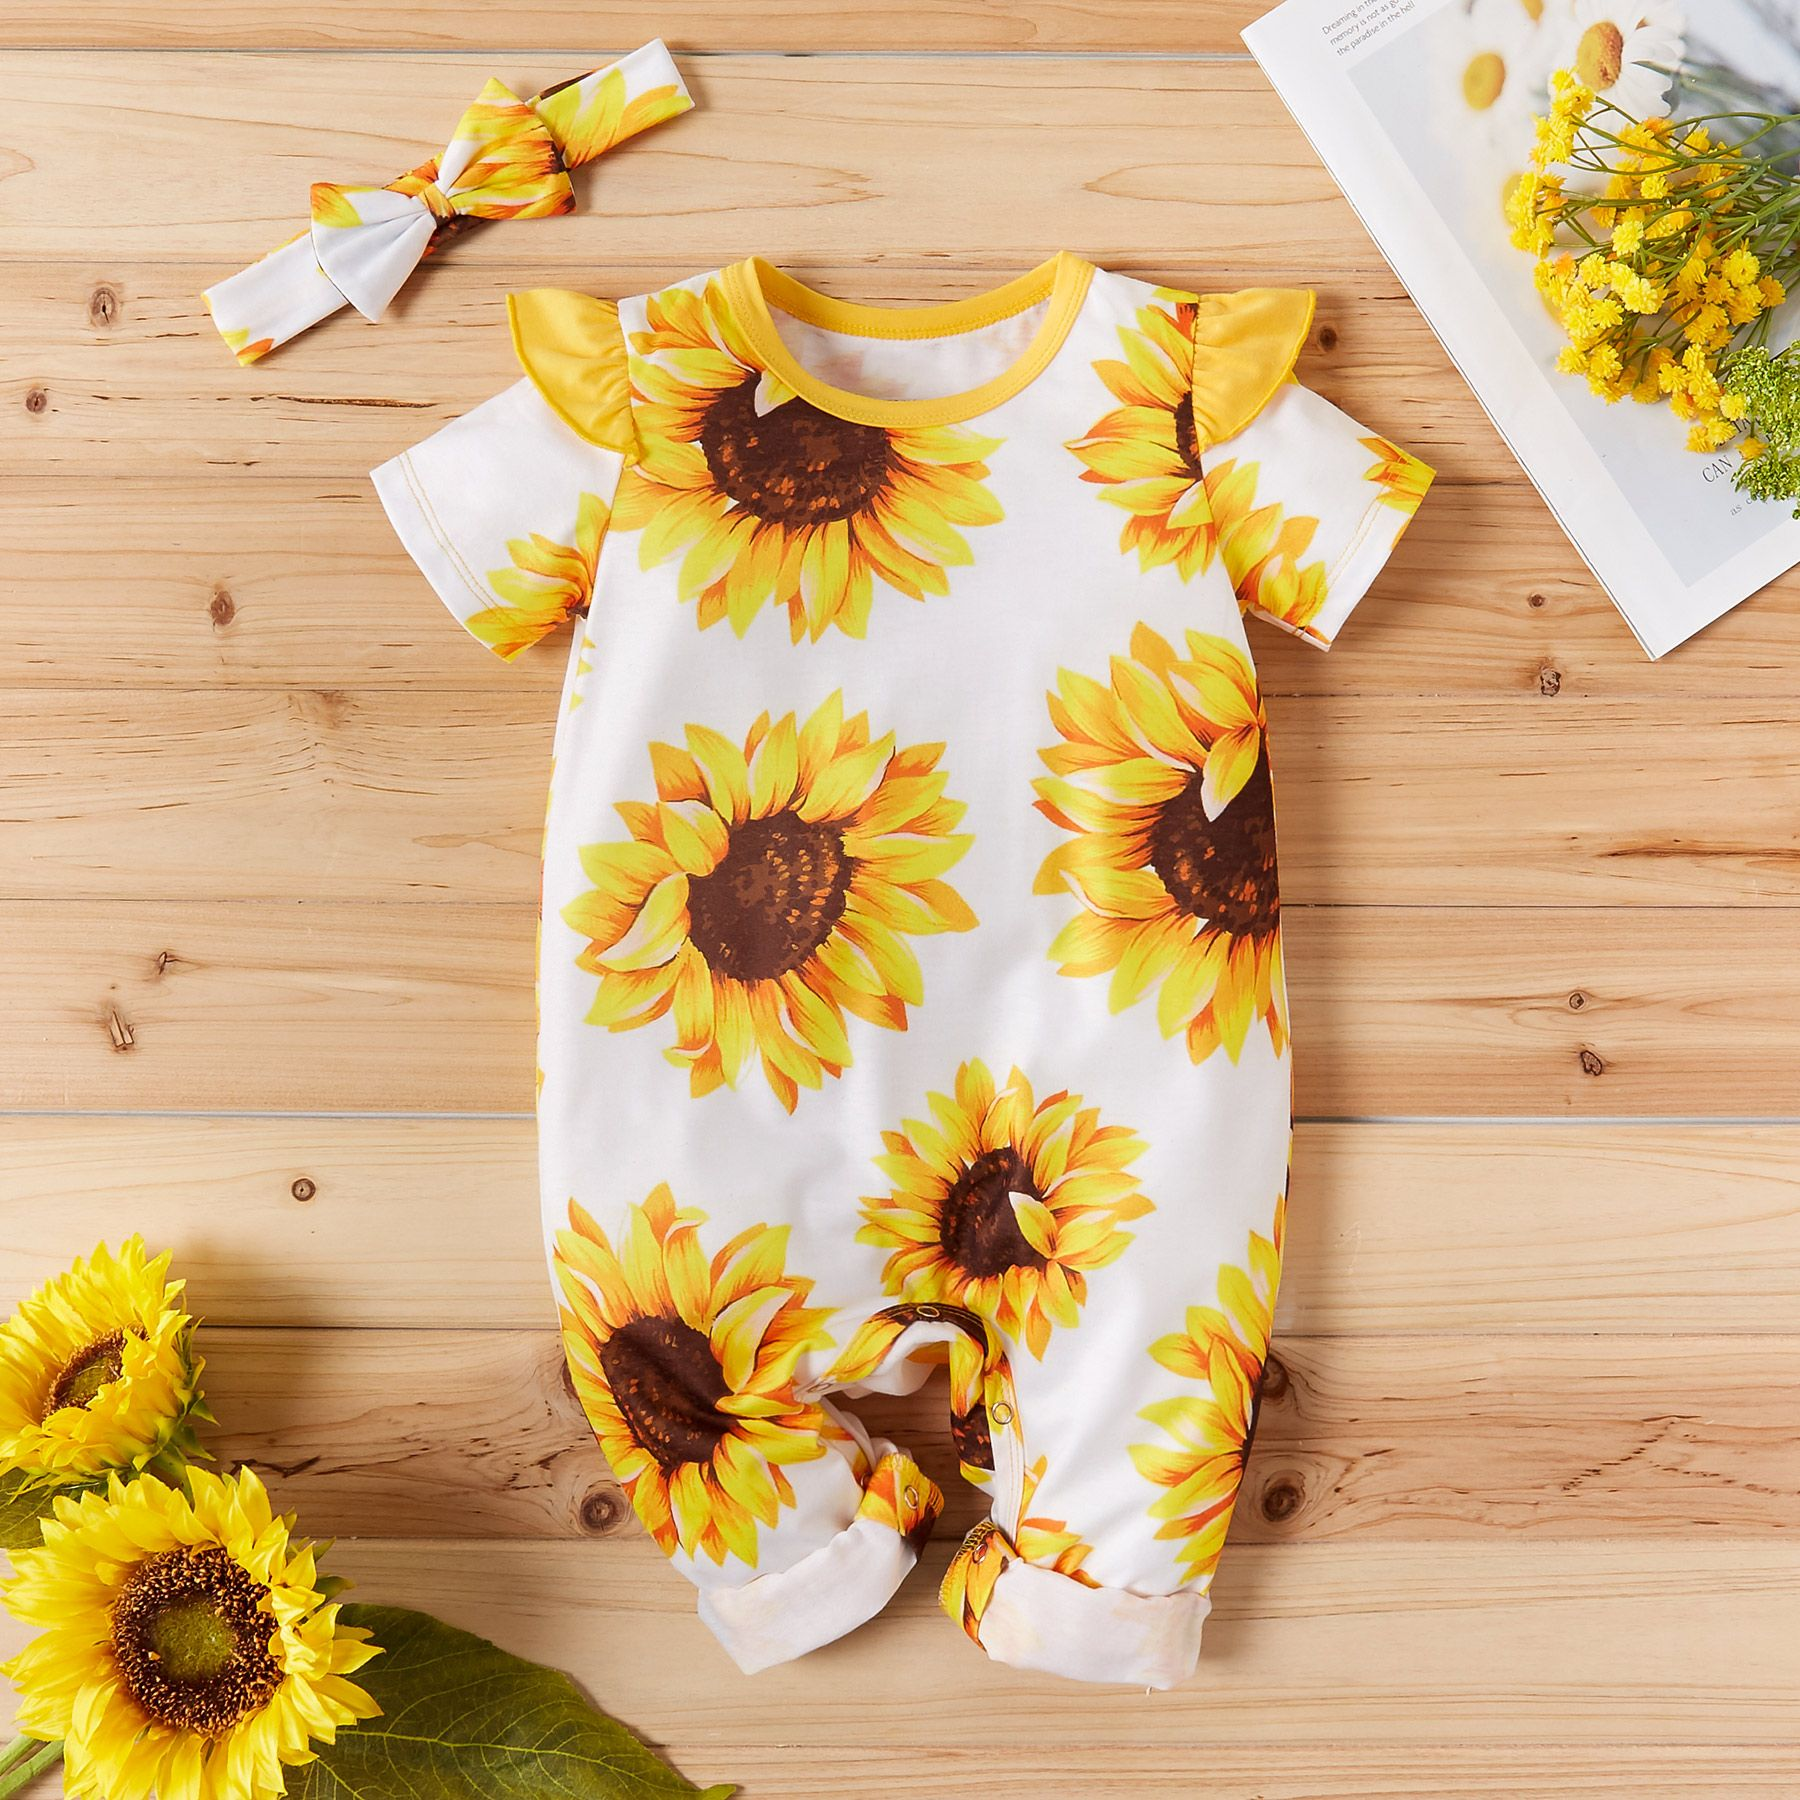 USA Toddler Kid Baby Girls Sunflower Romper Bodysuit Jumpsuit Outfit Clothes Set